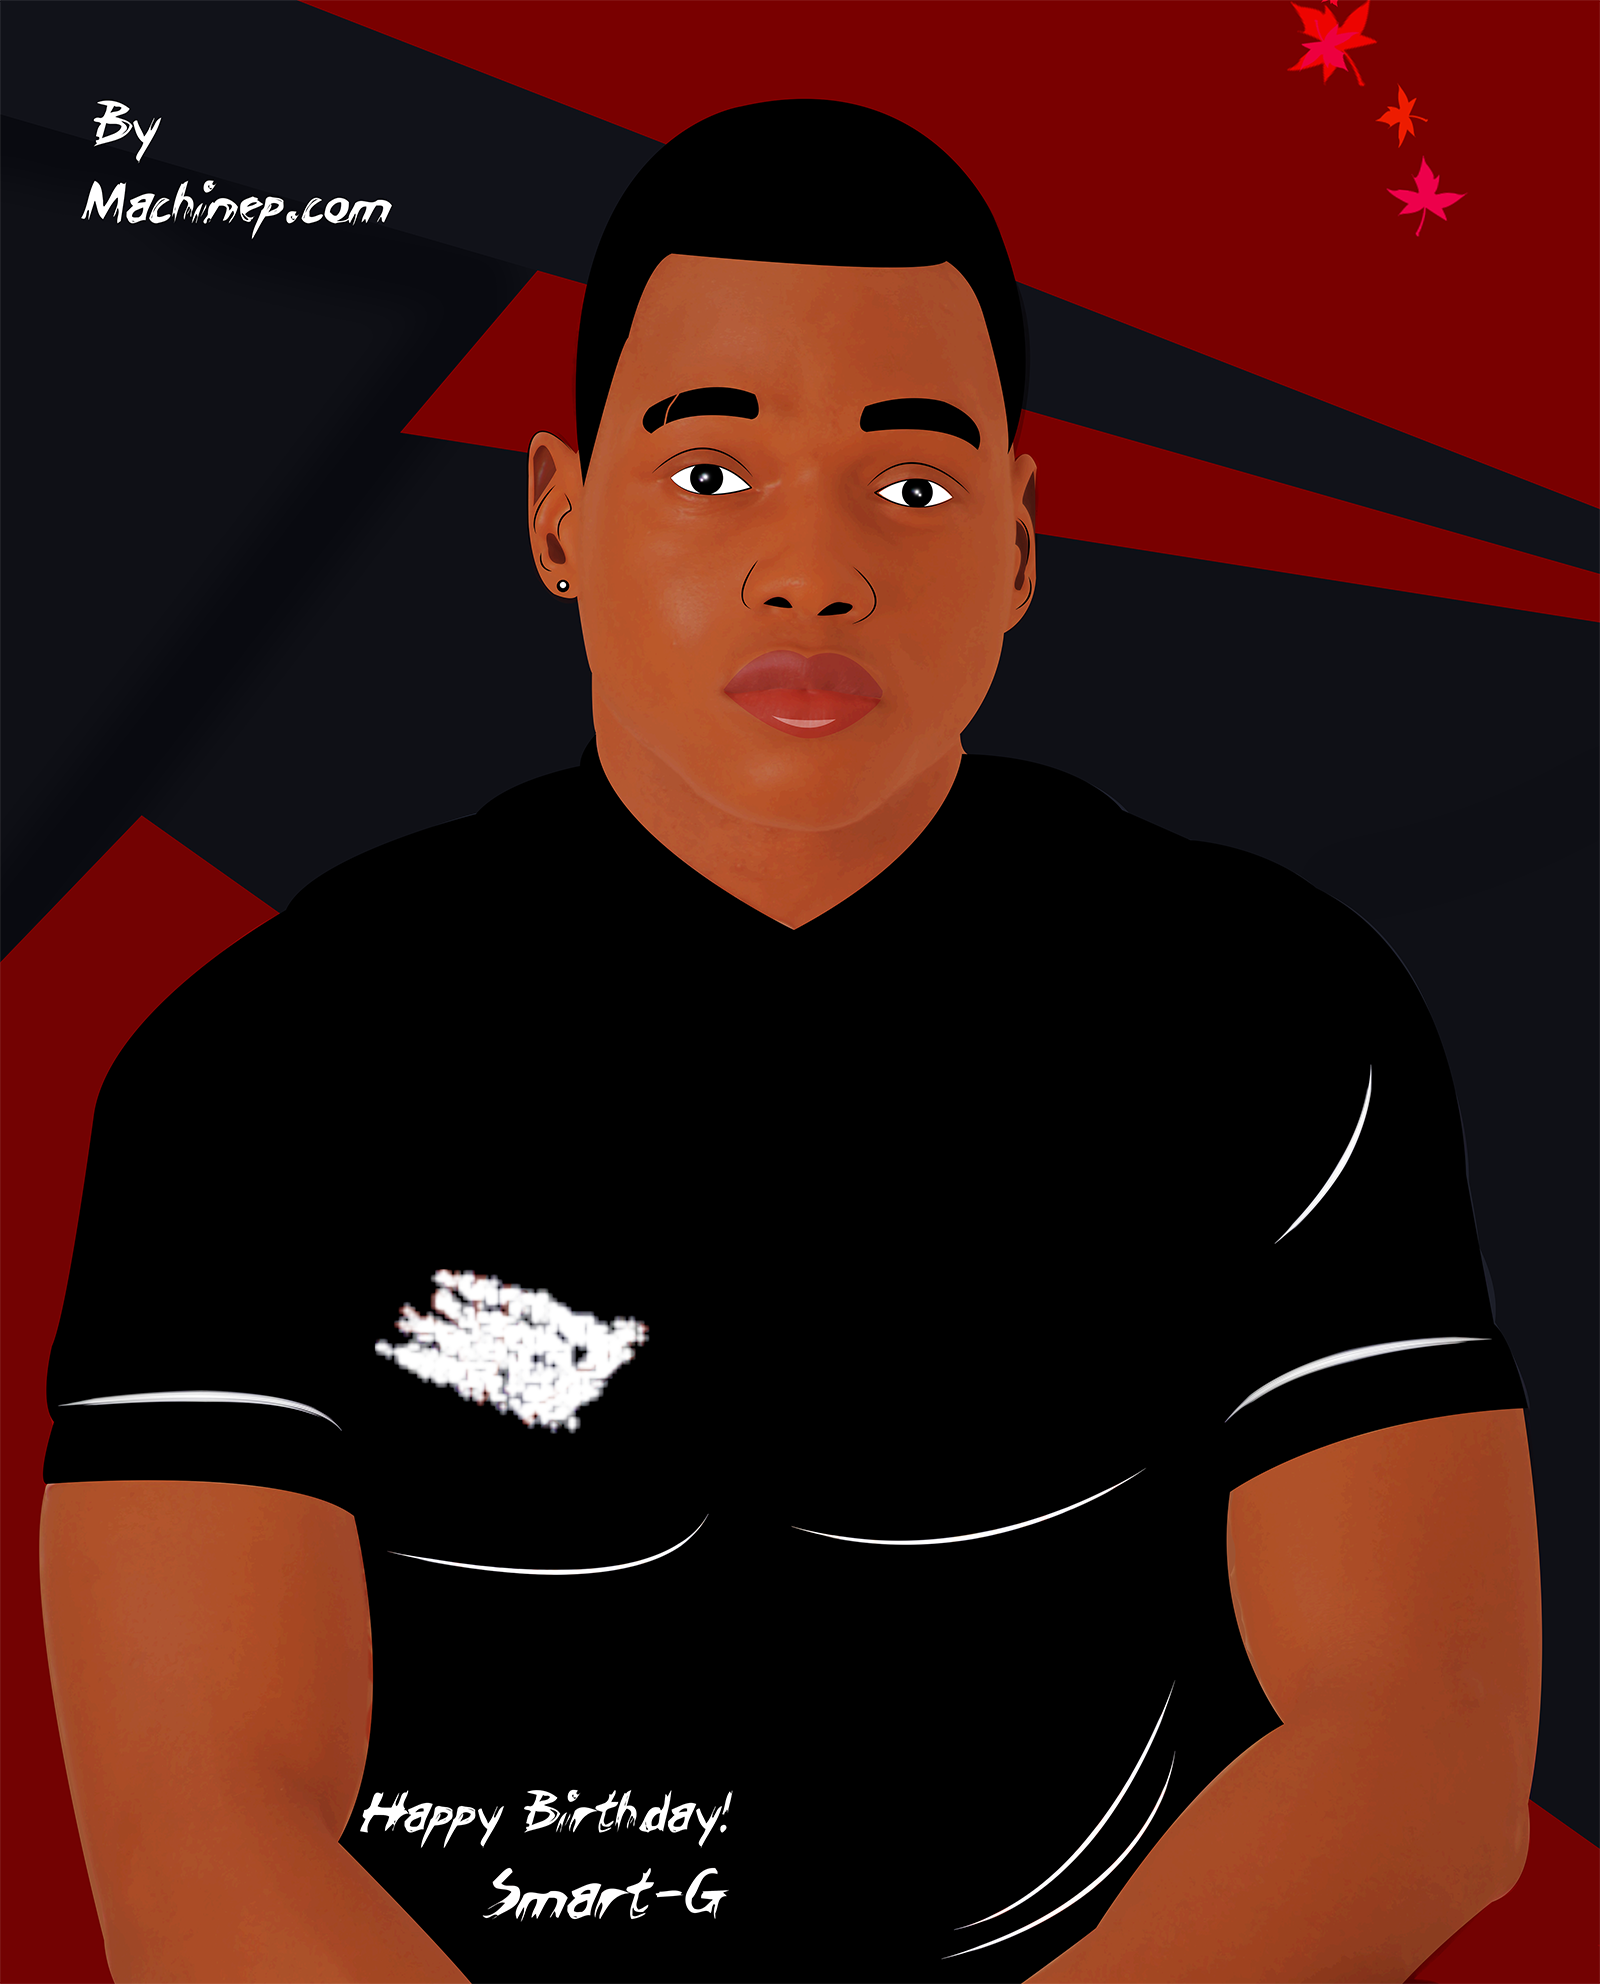 Smart G cartoon Designed by Machinep Graphics